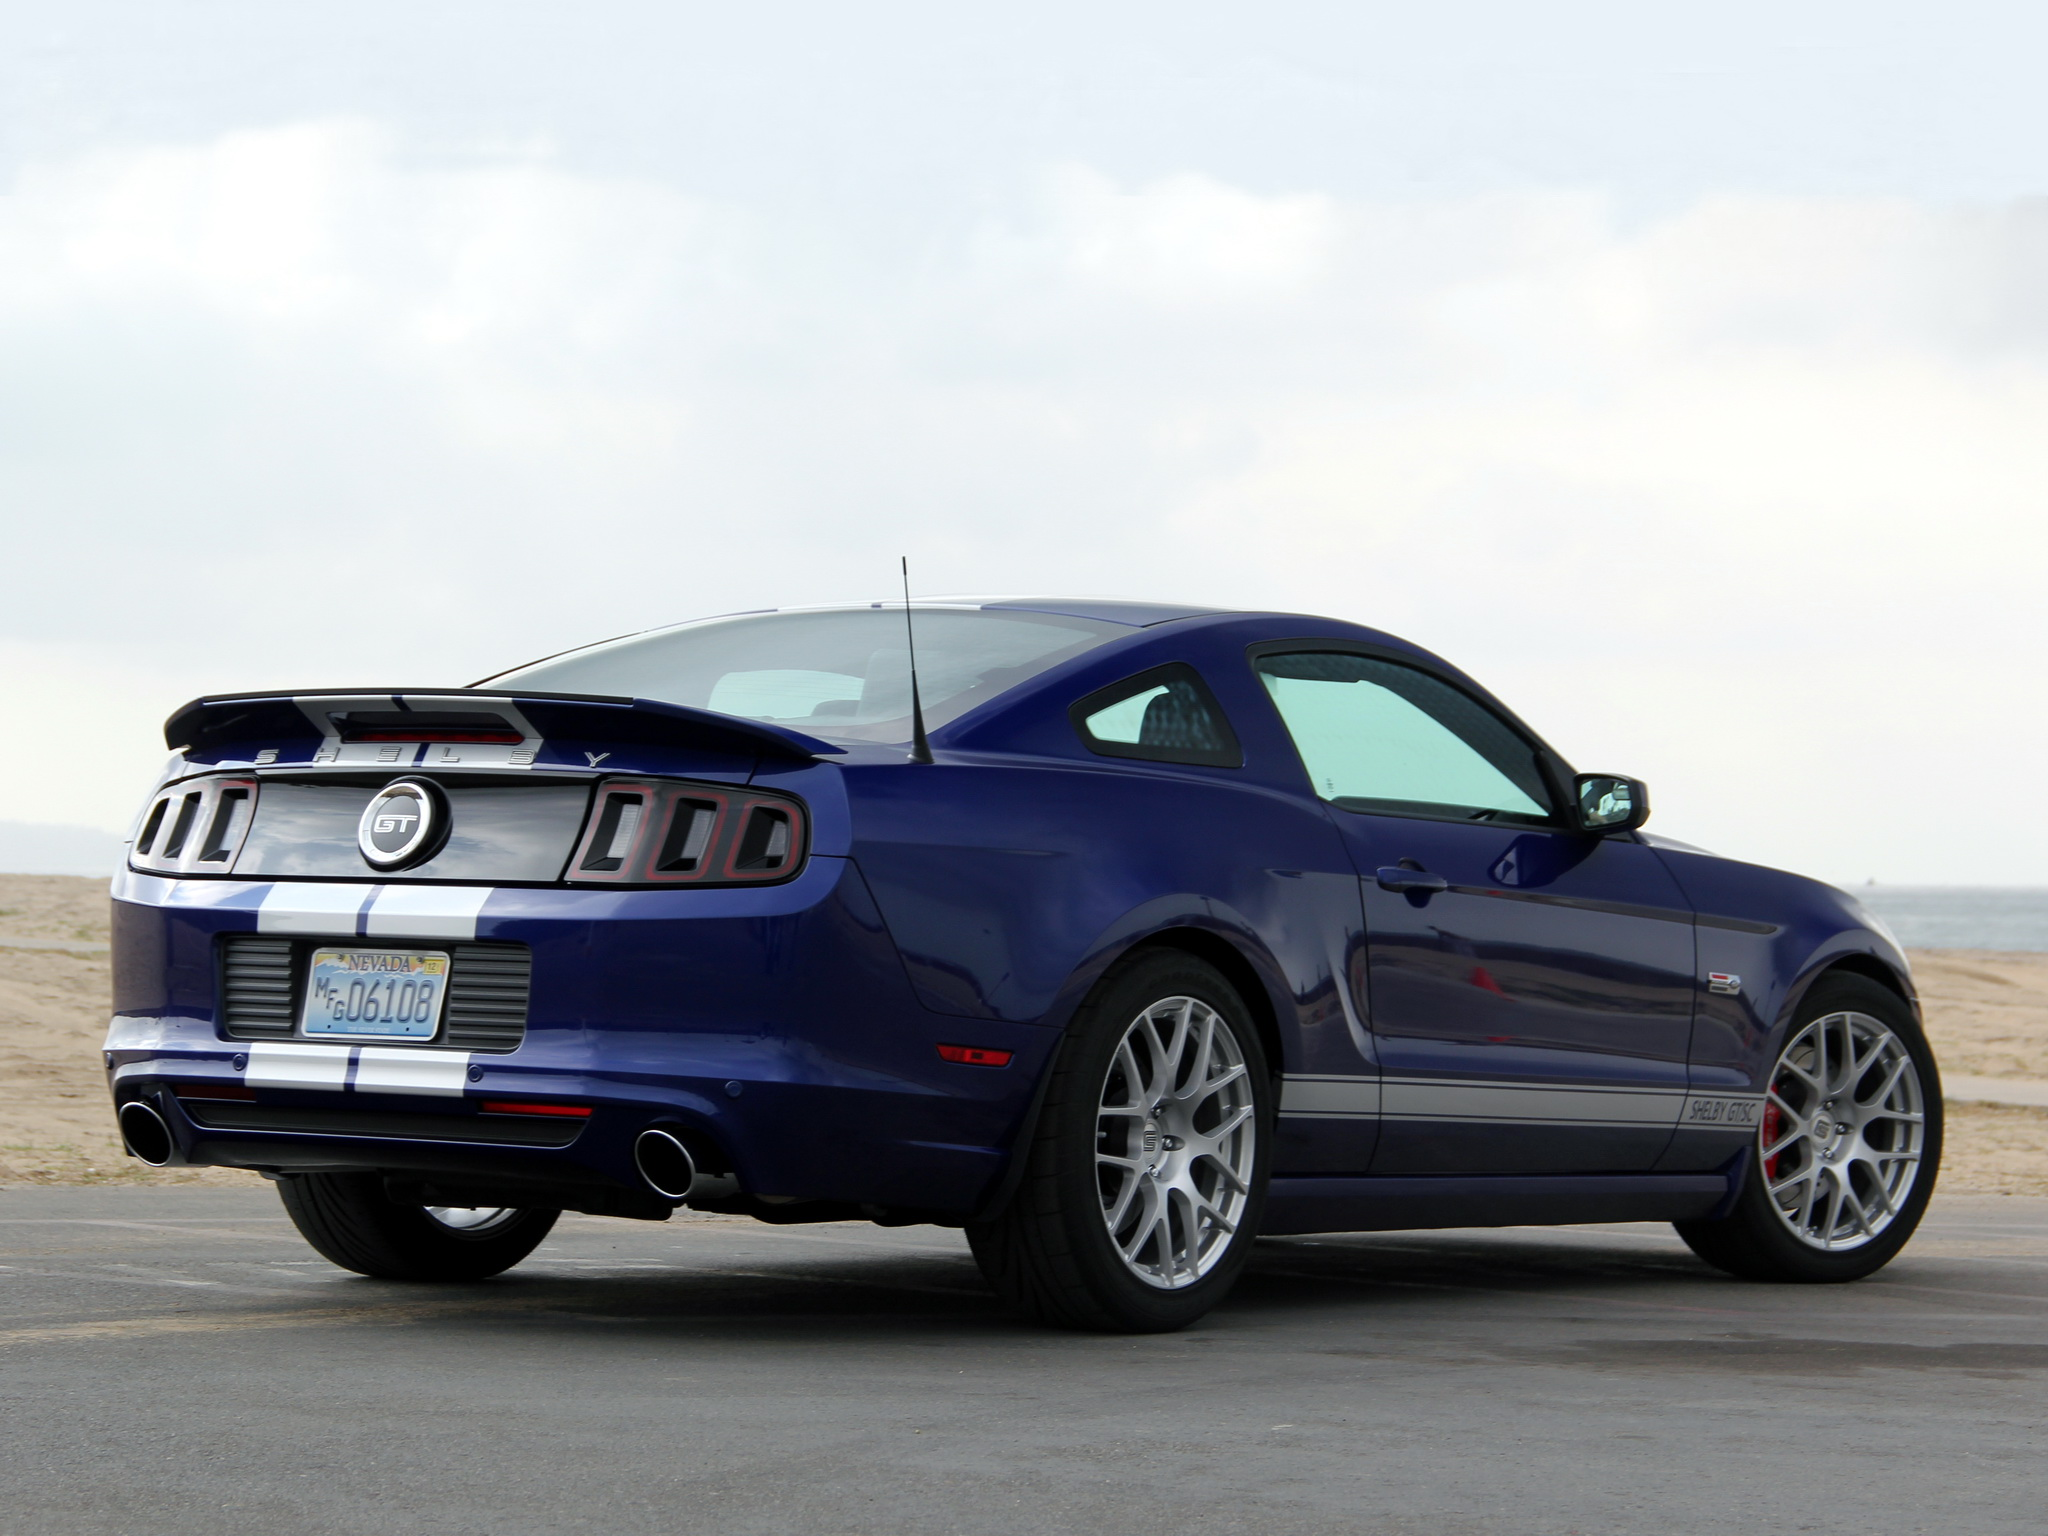 2014 shelby ford mustang gt sc muscle fs wallpaper. Black Bedroom Furniture Sets. Home Design Ideas